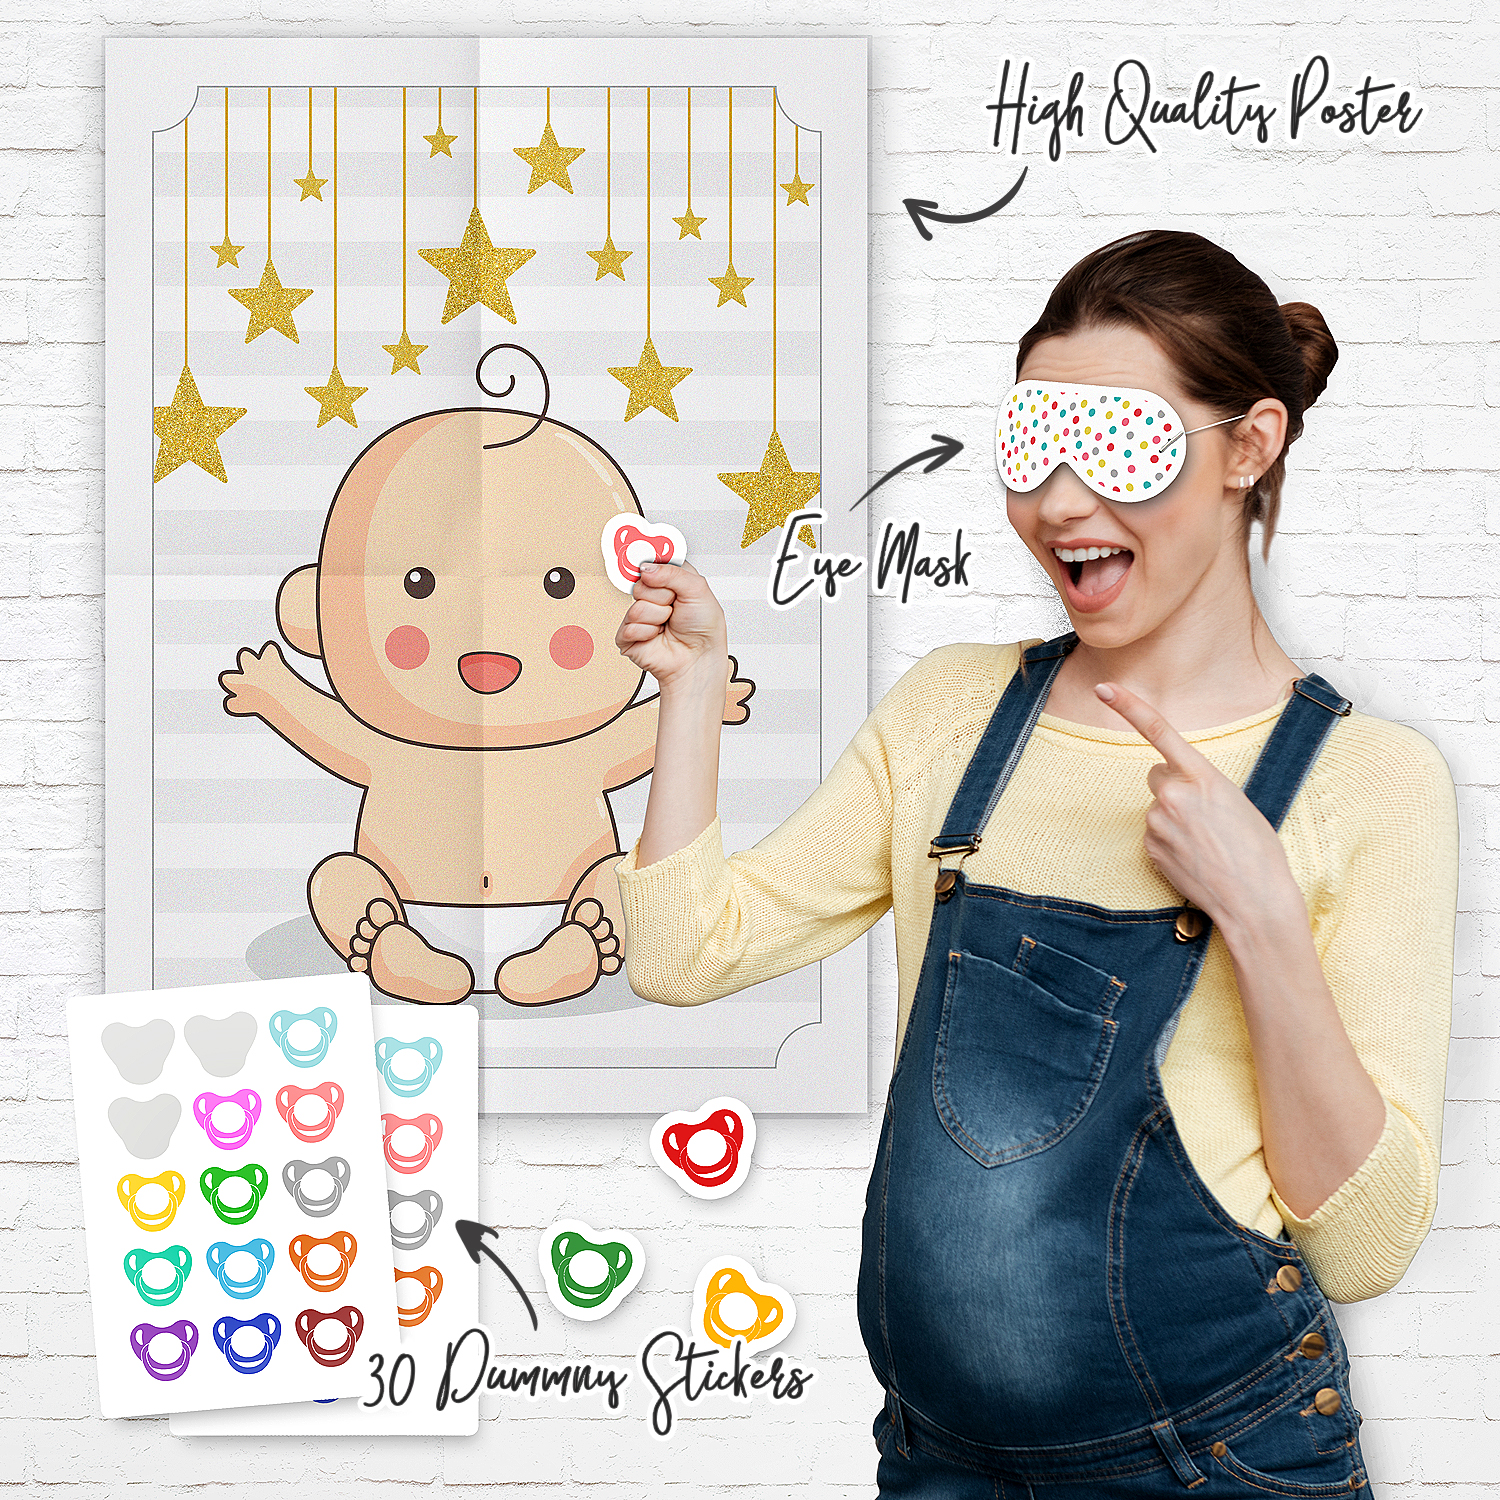 Pin The Dummy On Baby Shower Party Game Games Boy Girl Unisex High Resolution Dummies Pacifier Poster Includes Blindfold Stickers All Orders Are Sent In A A4 Envelope To Keep Cost Down Will